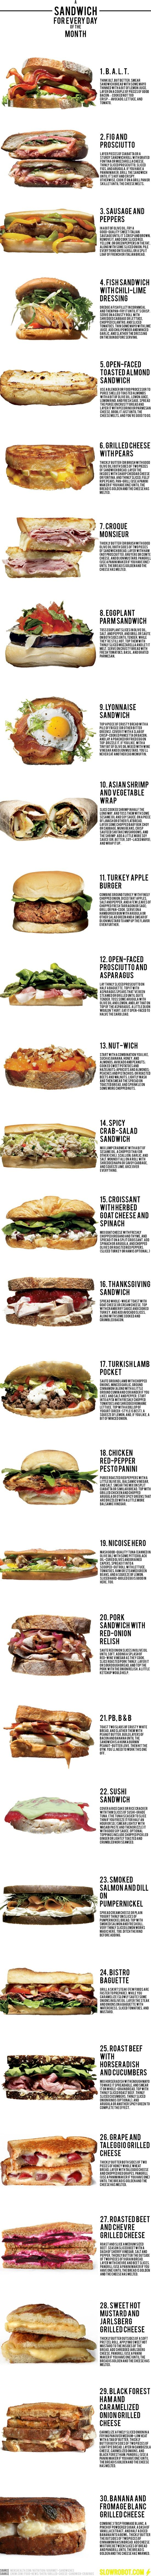 A sandwich for every day of the month